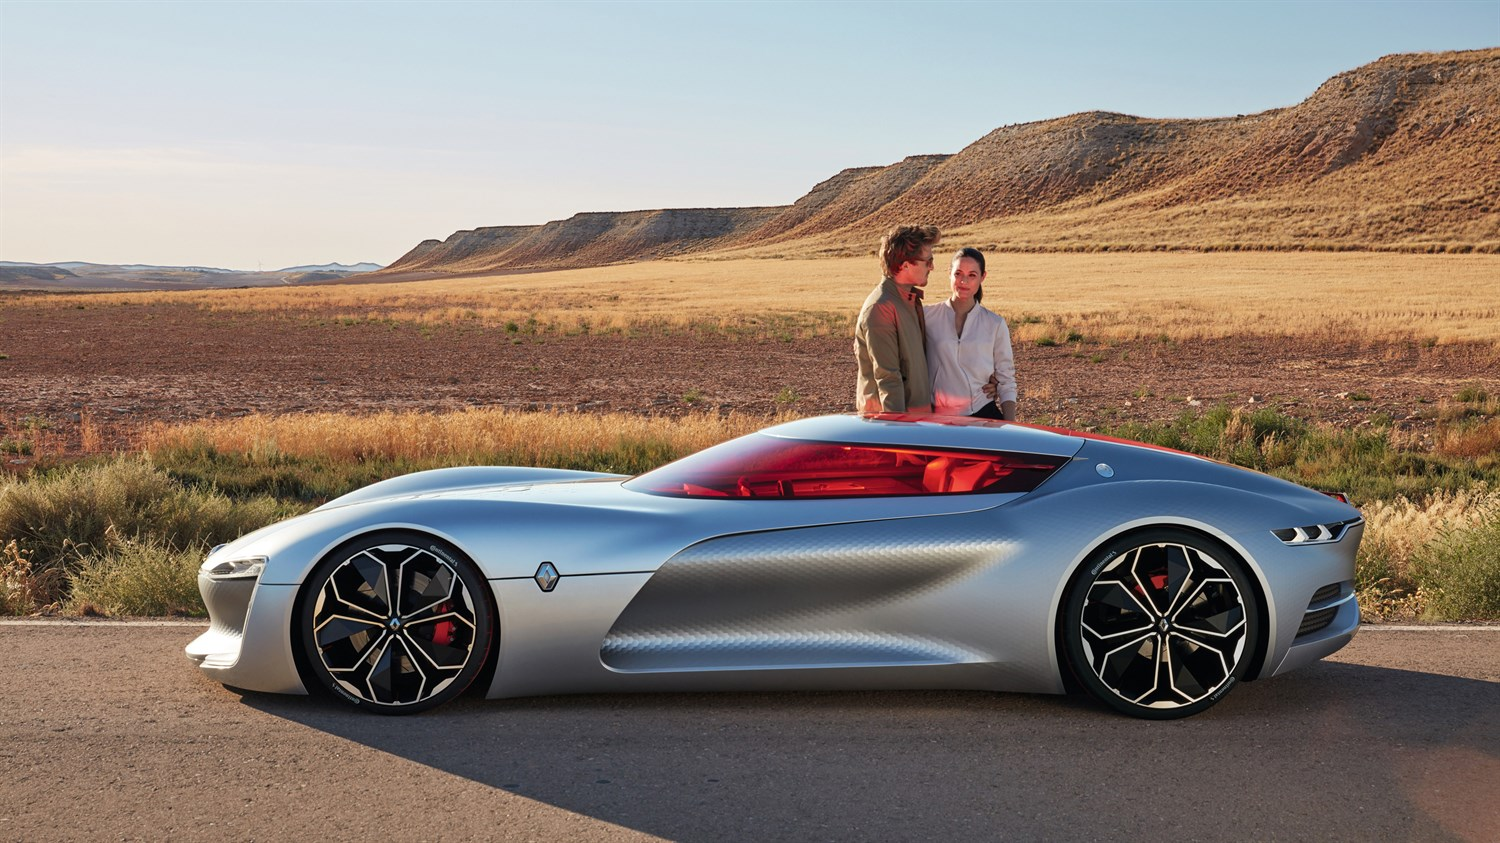 Renault TREZOR Concept -couple behind a car